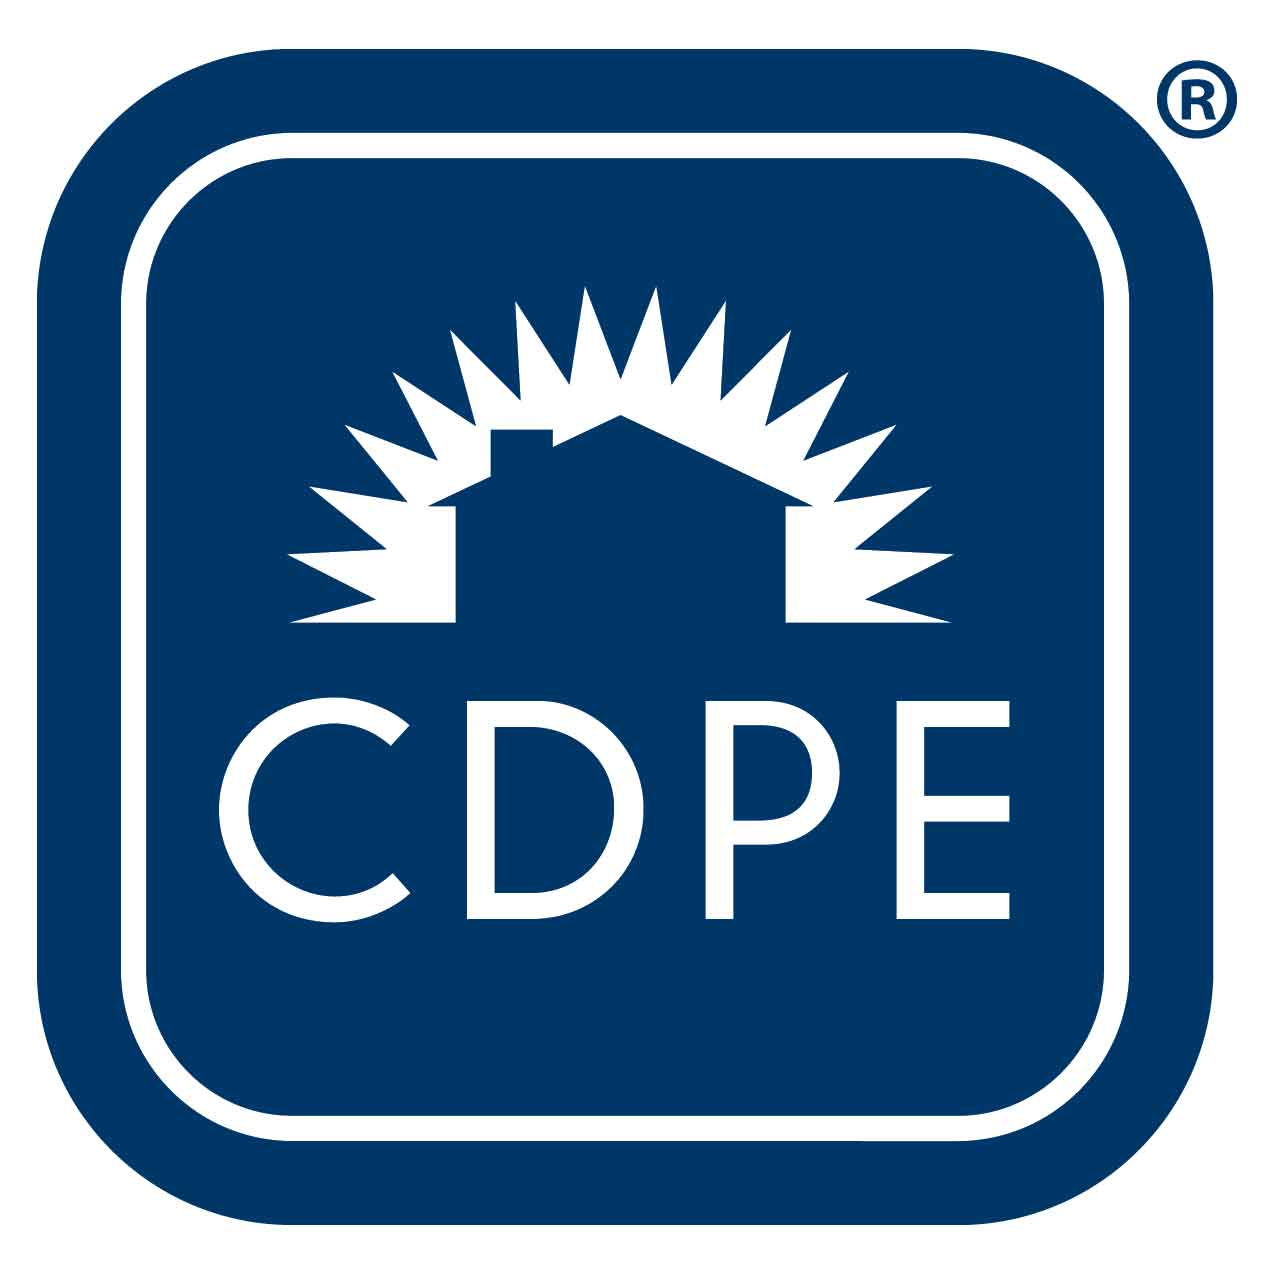 CDPE - Certified Distressed (Short Sales) Property Expert